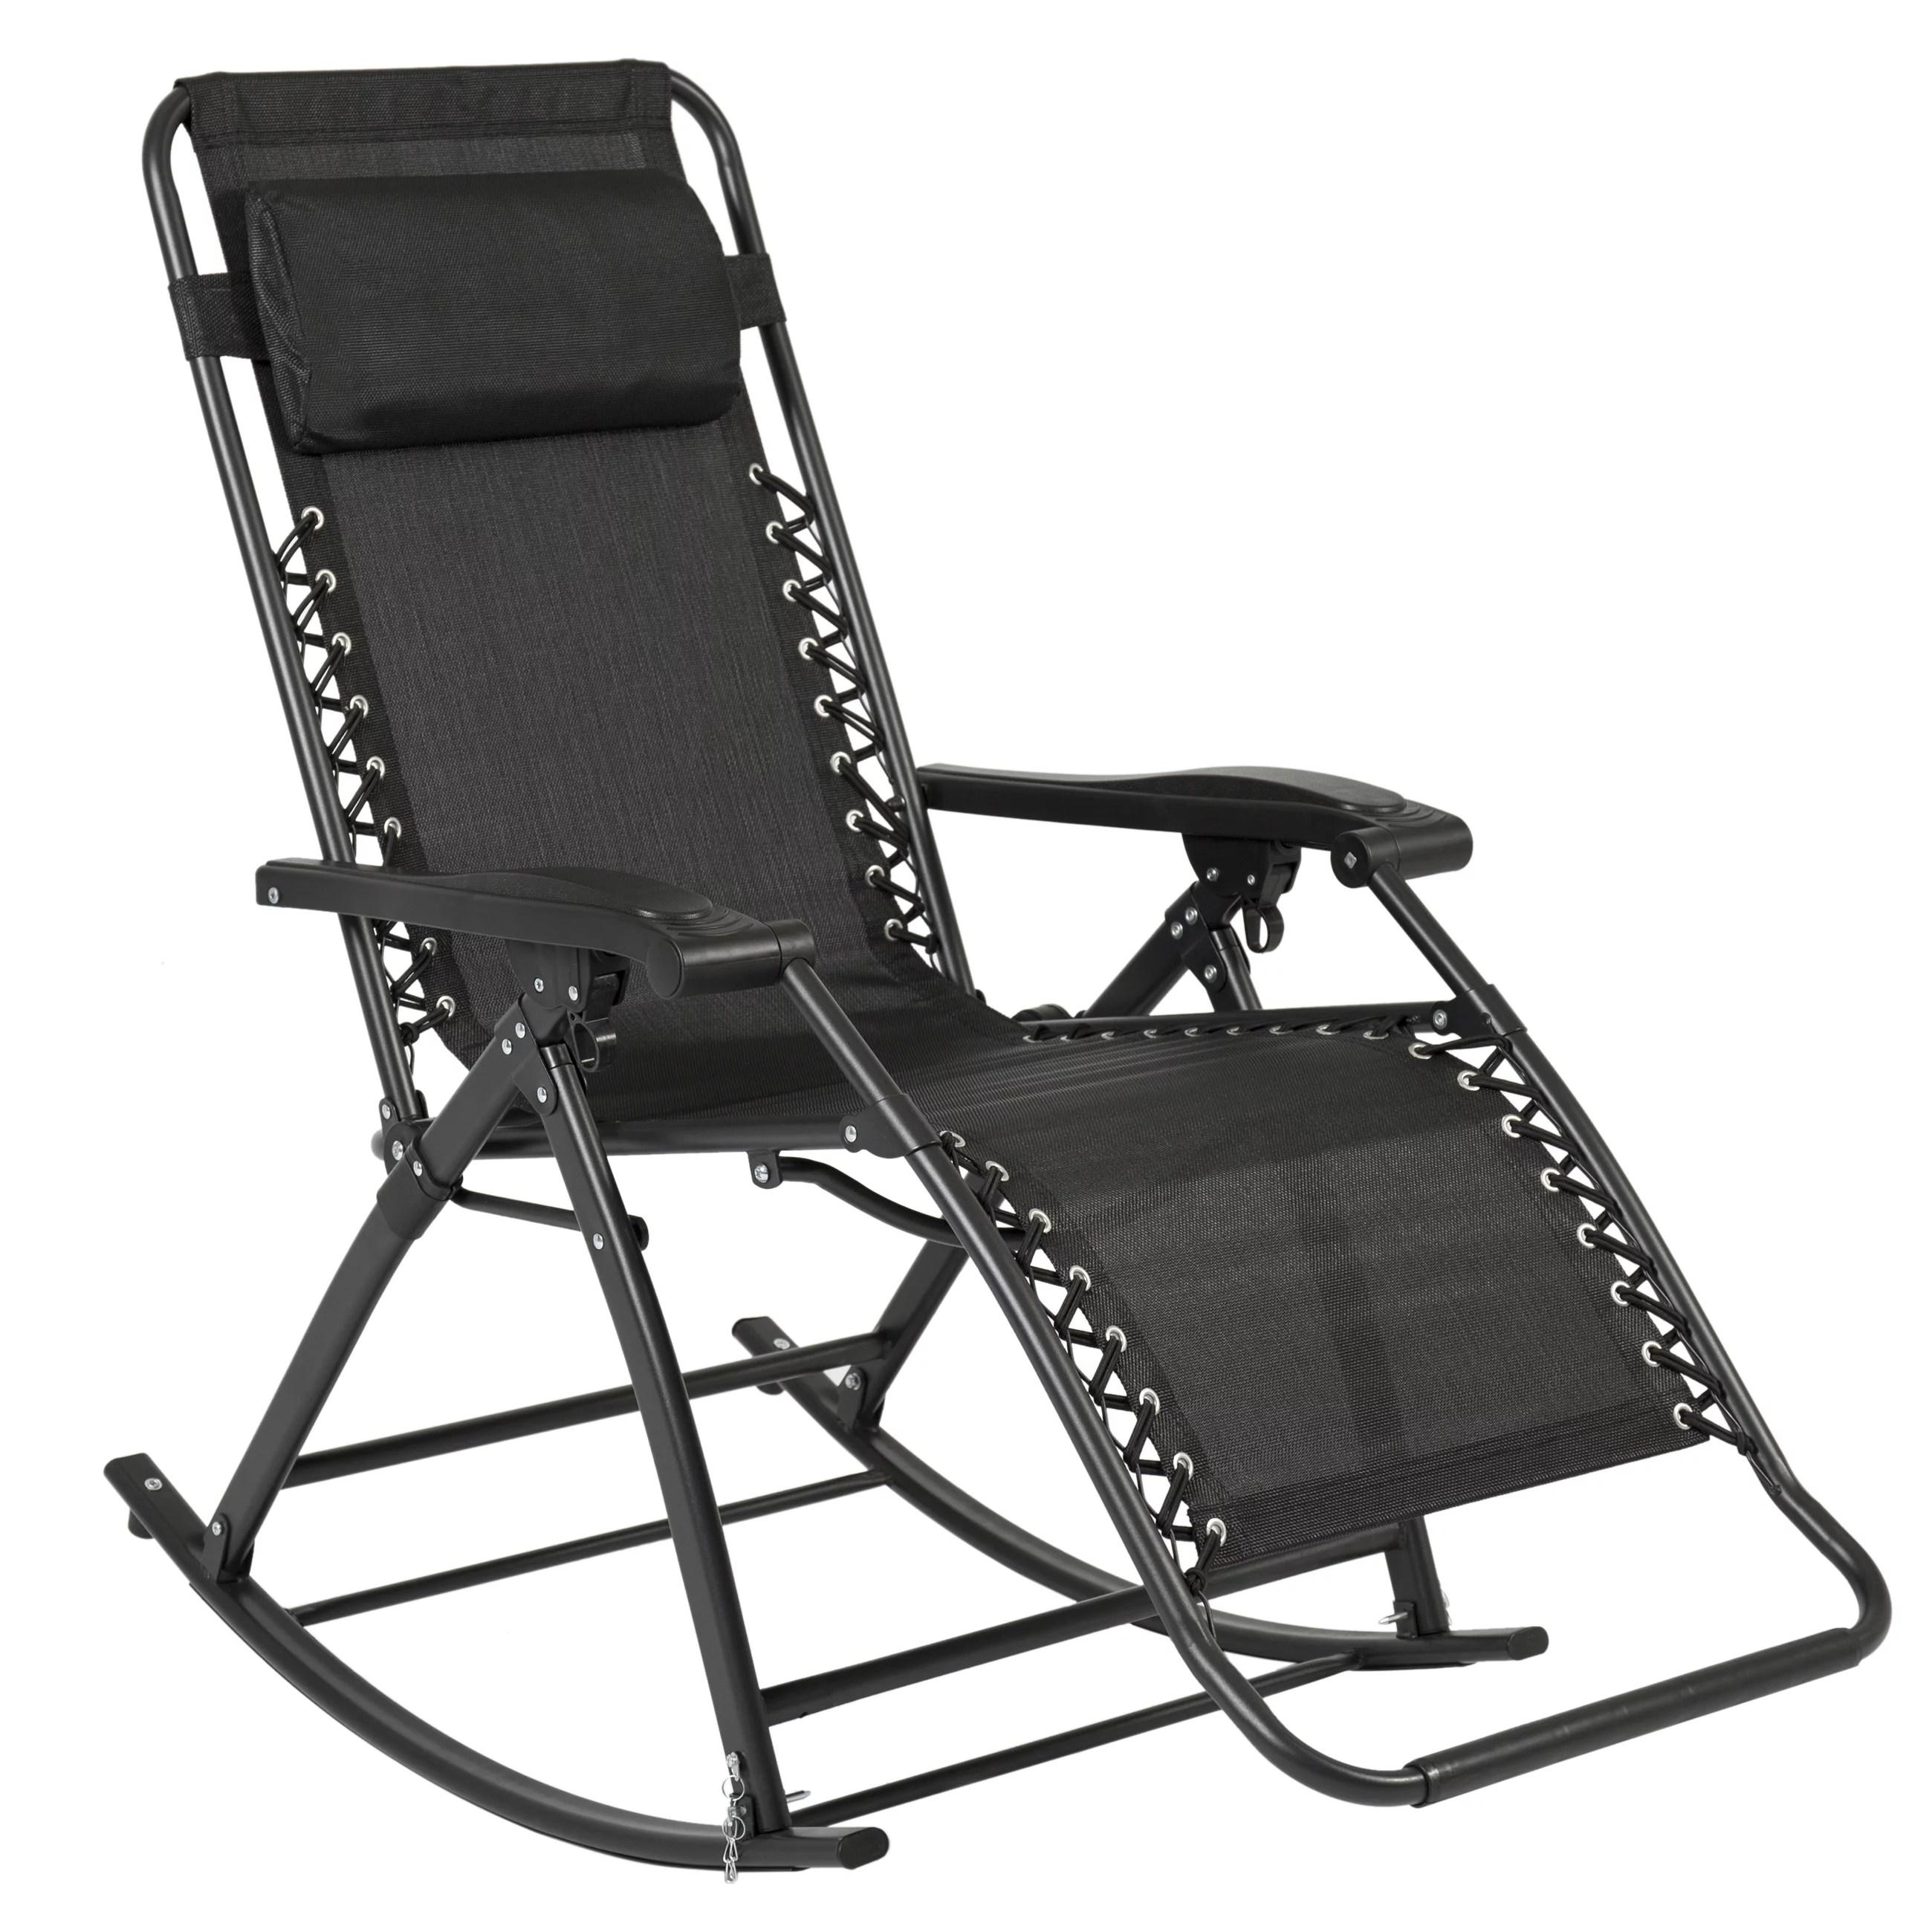 Zero Gravity Chair Walmart Canada Walmart Outdoor Rocking Chairs. Portable Rocking Chair